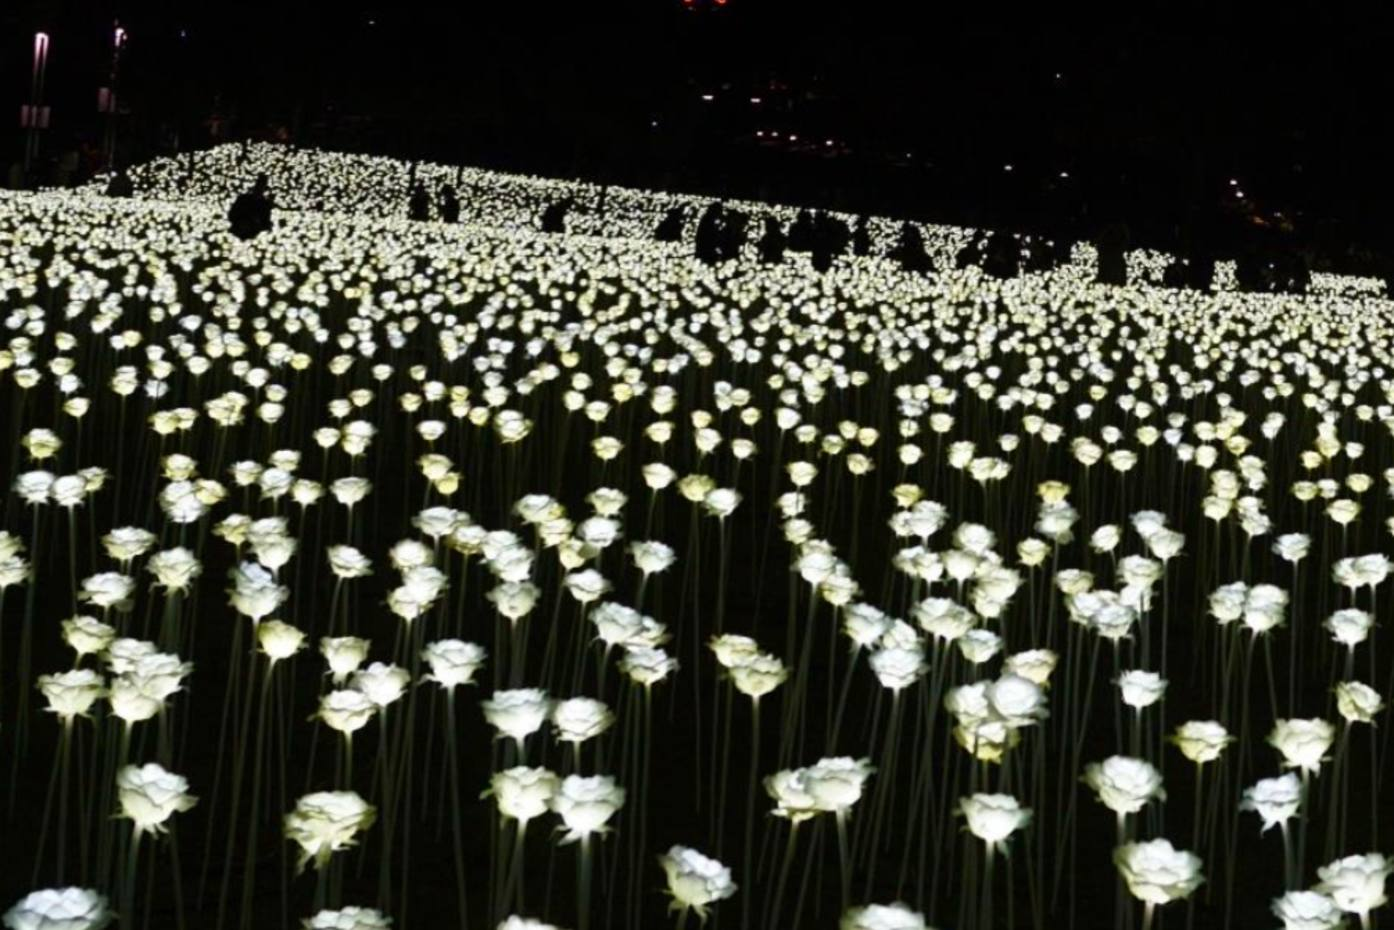 The Ever After Garden light installation in Mayfair features 27,000 illuminated white roses